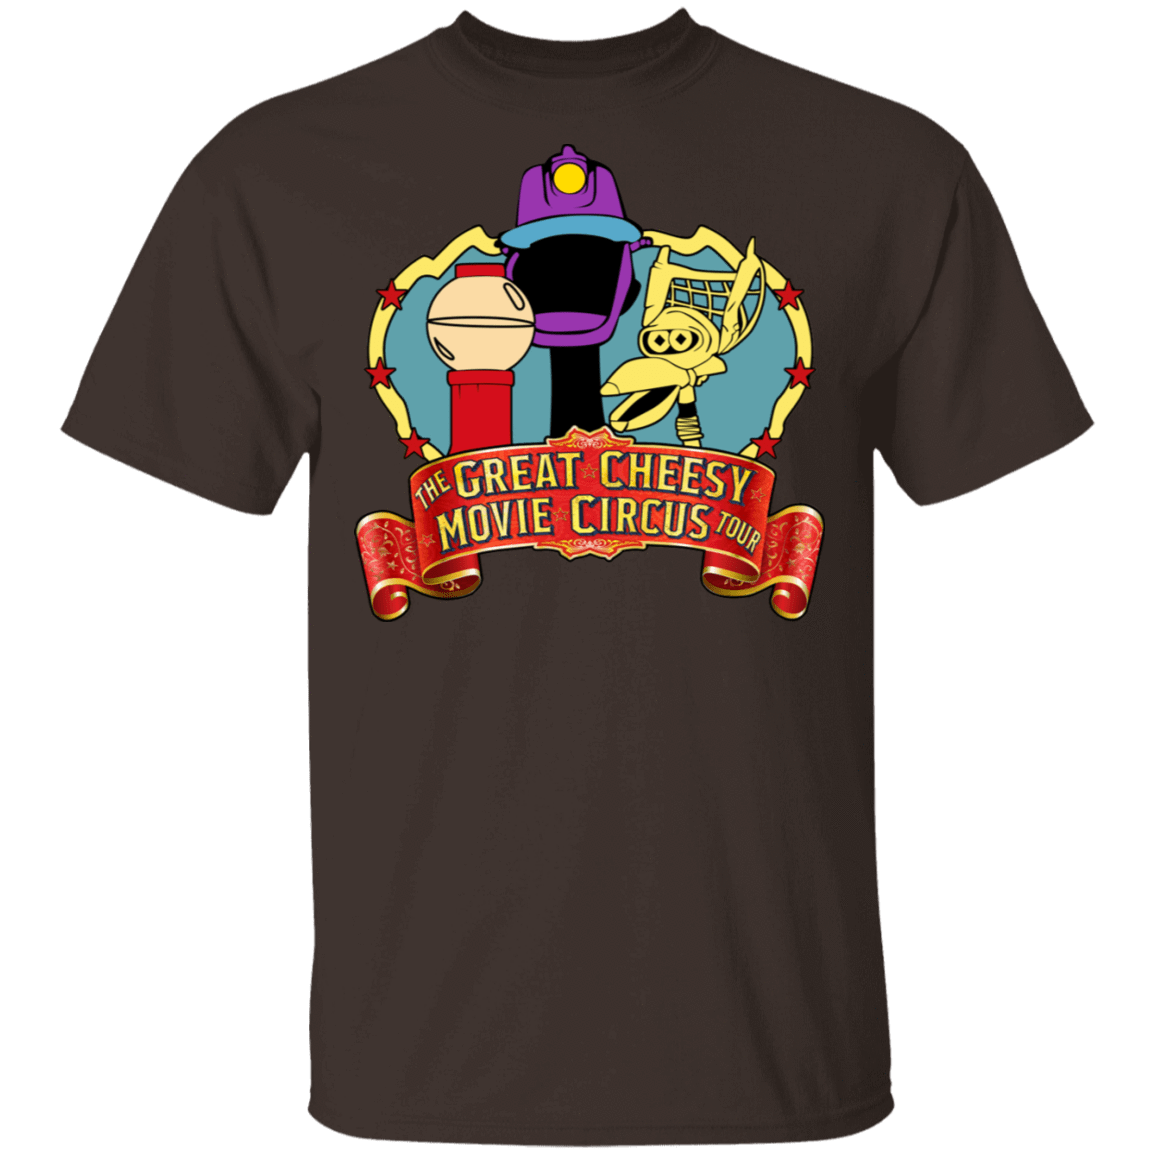 The Great Cheesy Movie Circus Tour T-Shirts, Hoodies, Tank 1049-9956-81647163-48152 - Tee Ript